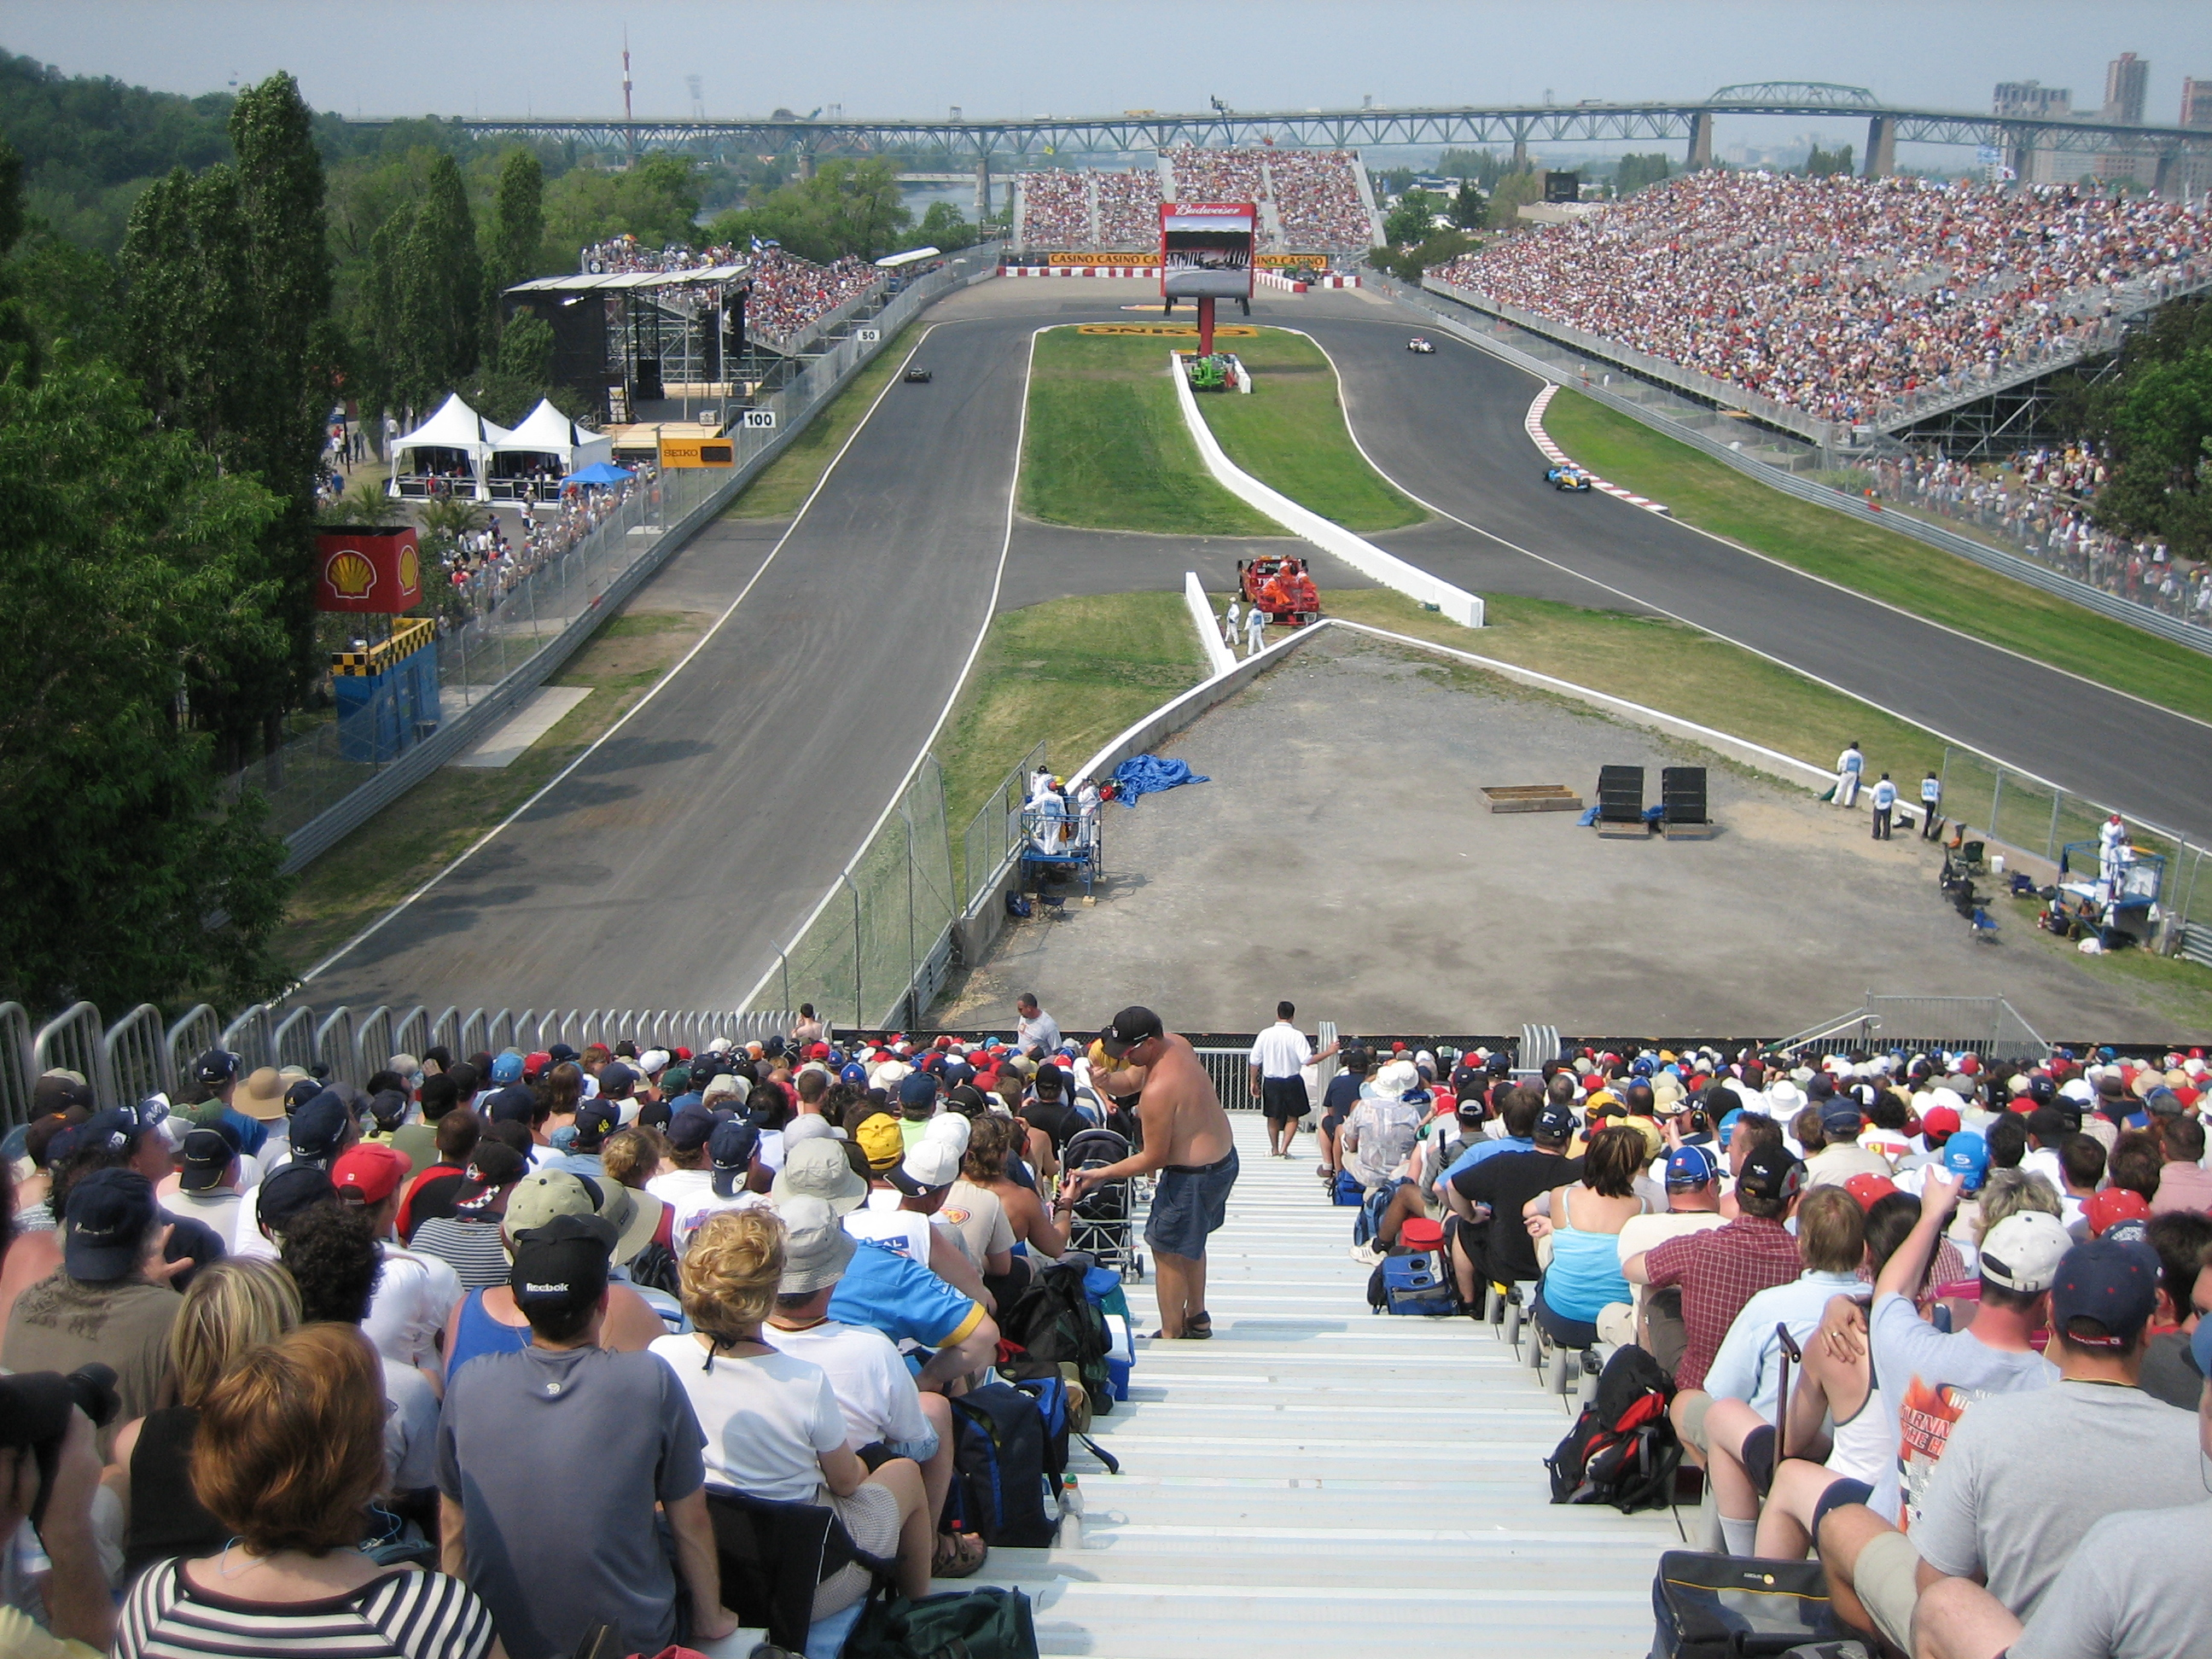 http://upload.wikimedia.org/wikipedia/commons/0/01/Circuit_Gilles_Villeneuve_Hairpin.jpg